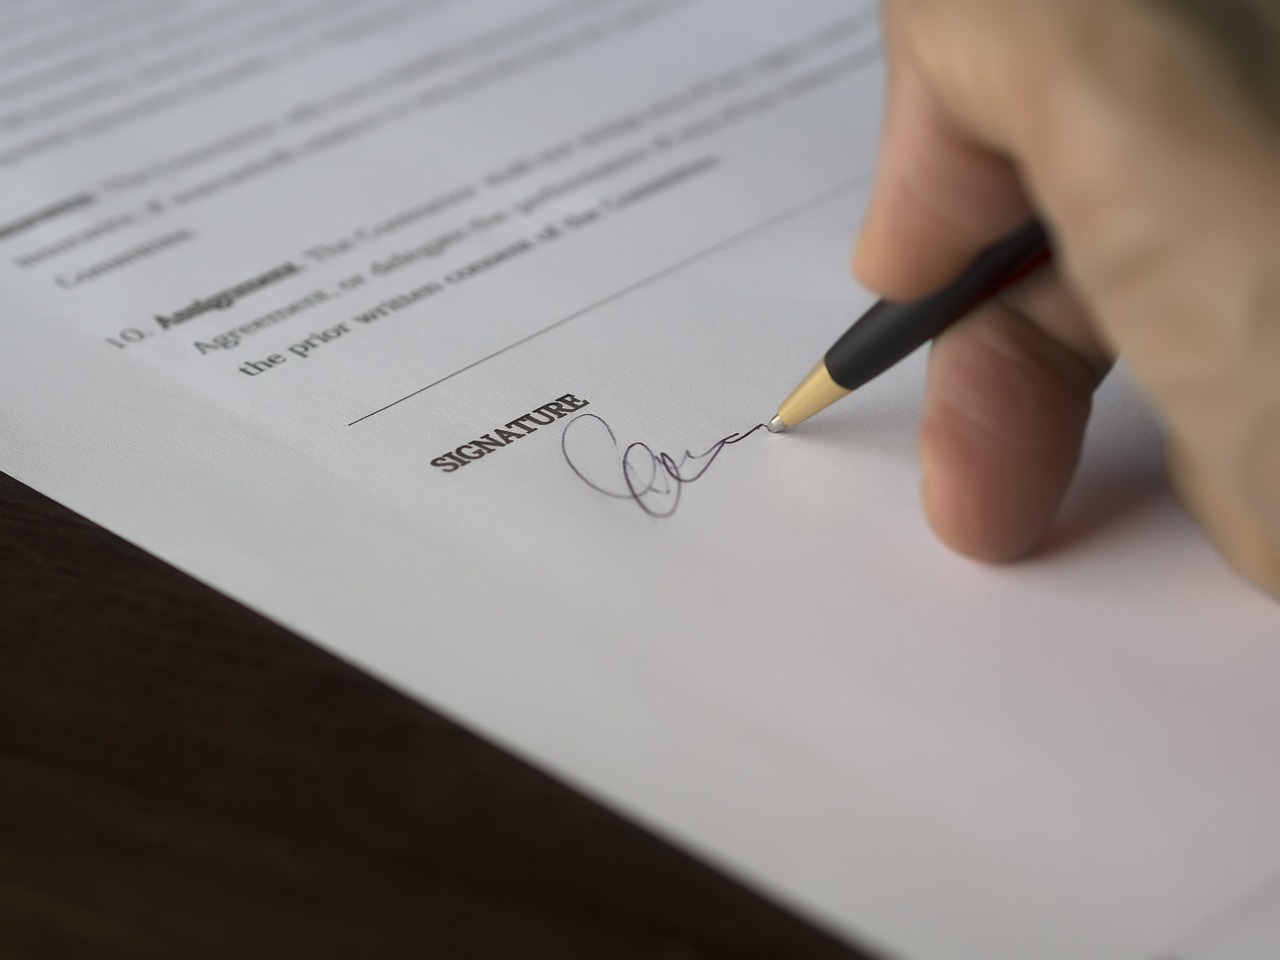 LA PROCEDURE D'ACHAT EN 5 ETAPES